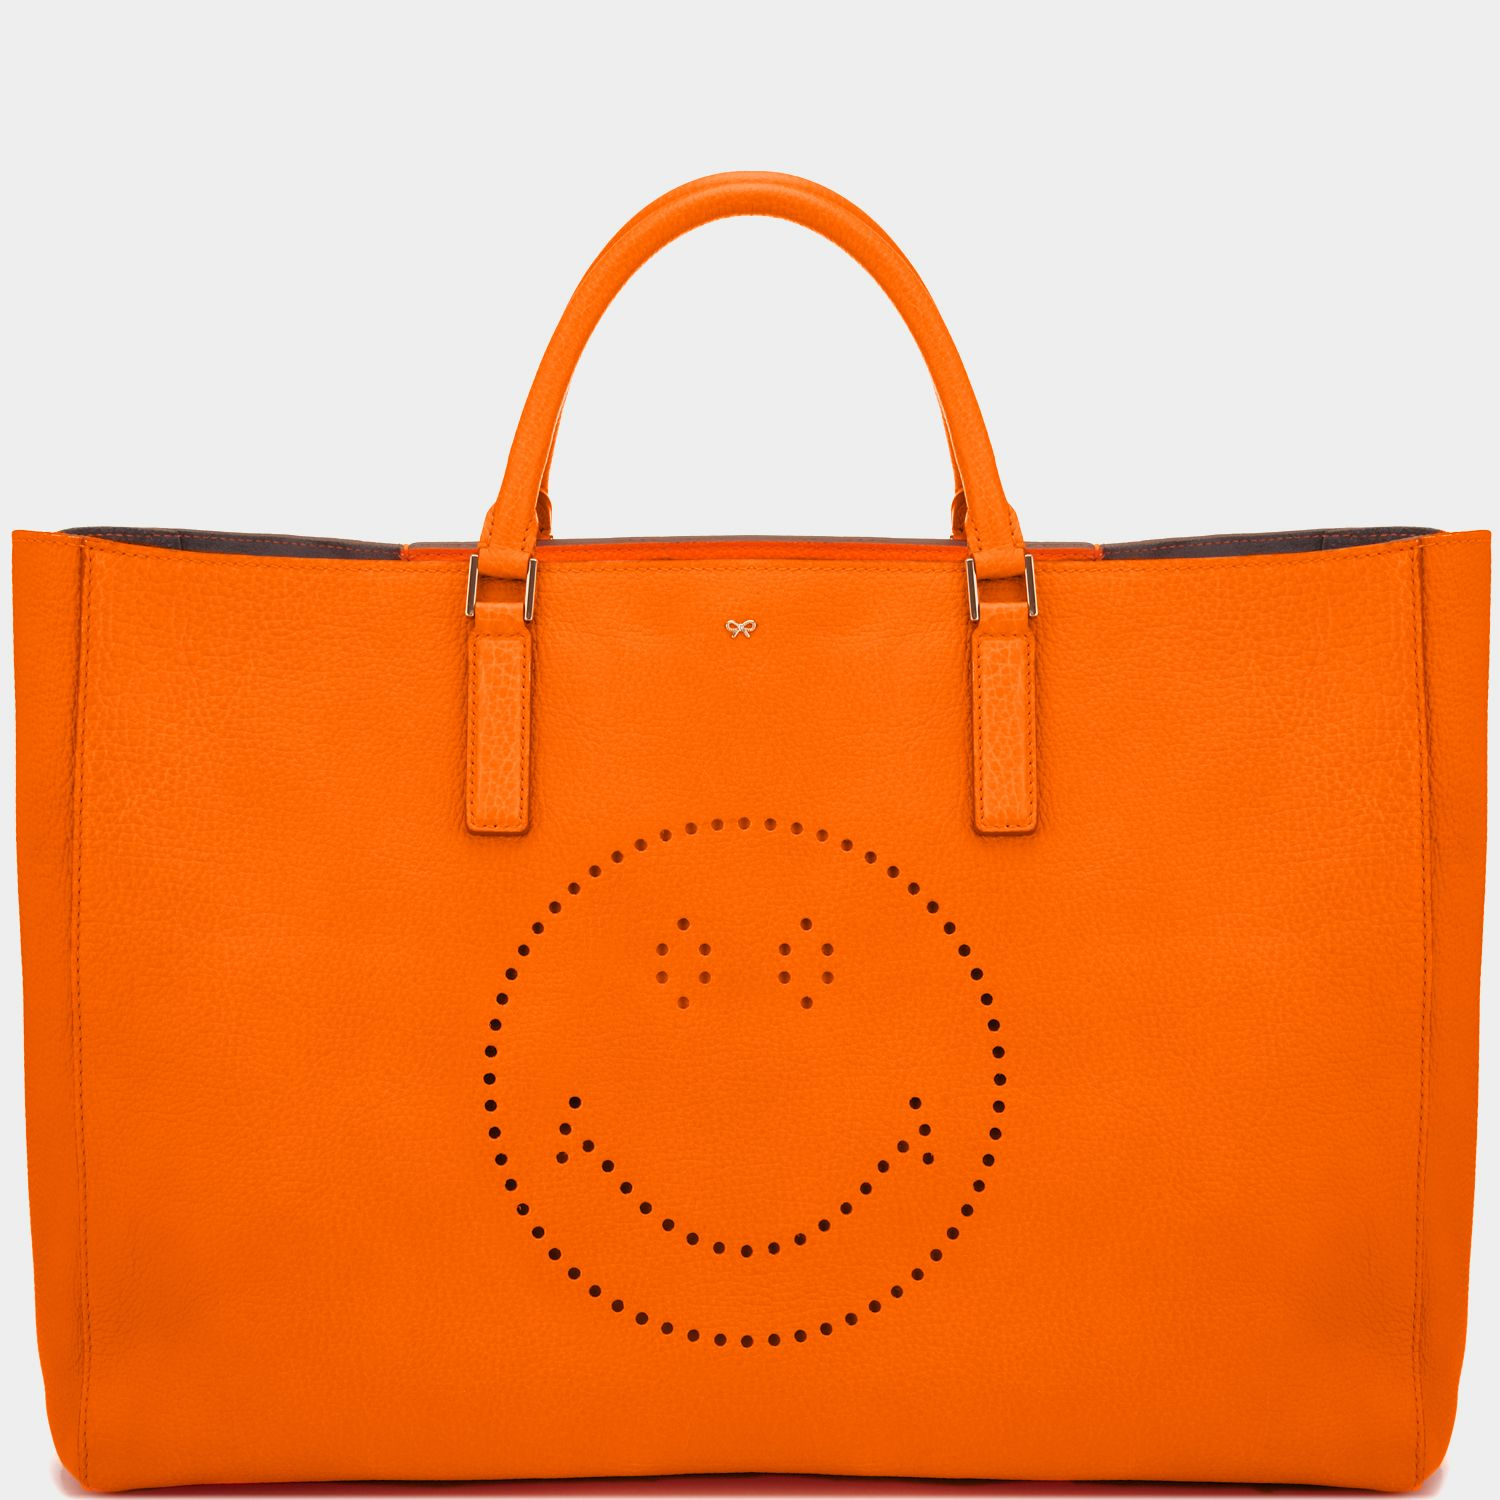 """<p style=""""margin-bottom:10px"""">To create the lightweight ,streamlined finish on the Featherweight Ebury we 've worked closely with our craftsmen to develop the technique used to fuse leather with a soft suede backing ,removing the need for any heavy additional stitching. This vibrant neon orange leather tote is finished with a whimsical punched out smiley face ,embodying our belief that fashion should always make you smile. Designed as a lightweight shell ,layer the ..."""